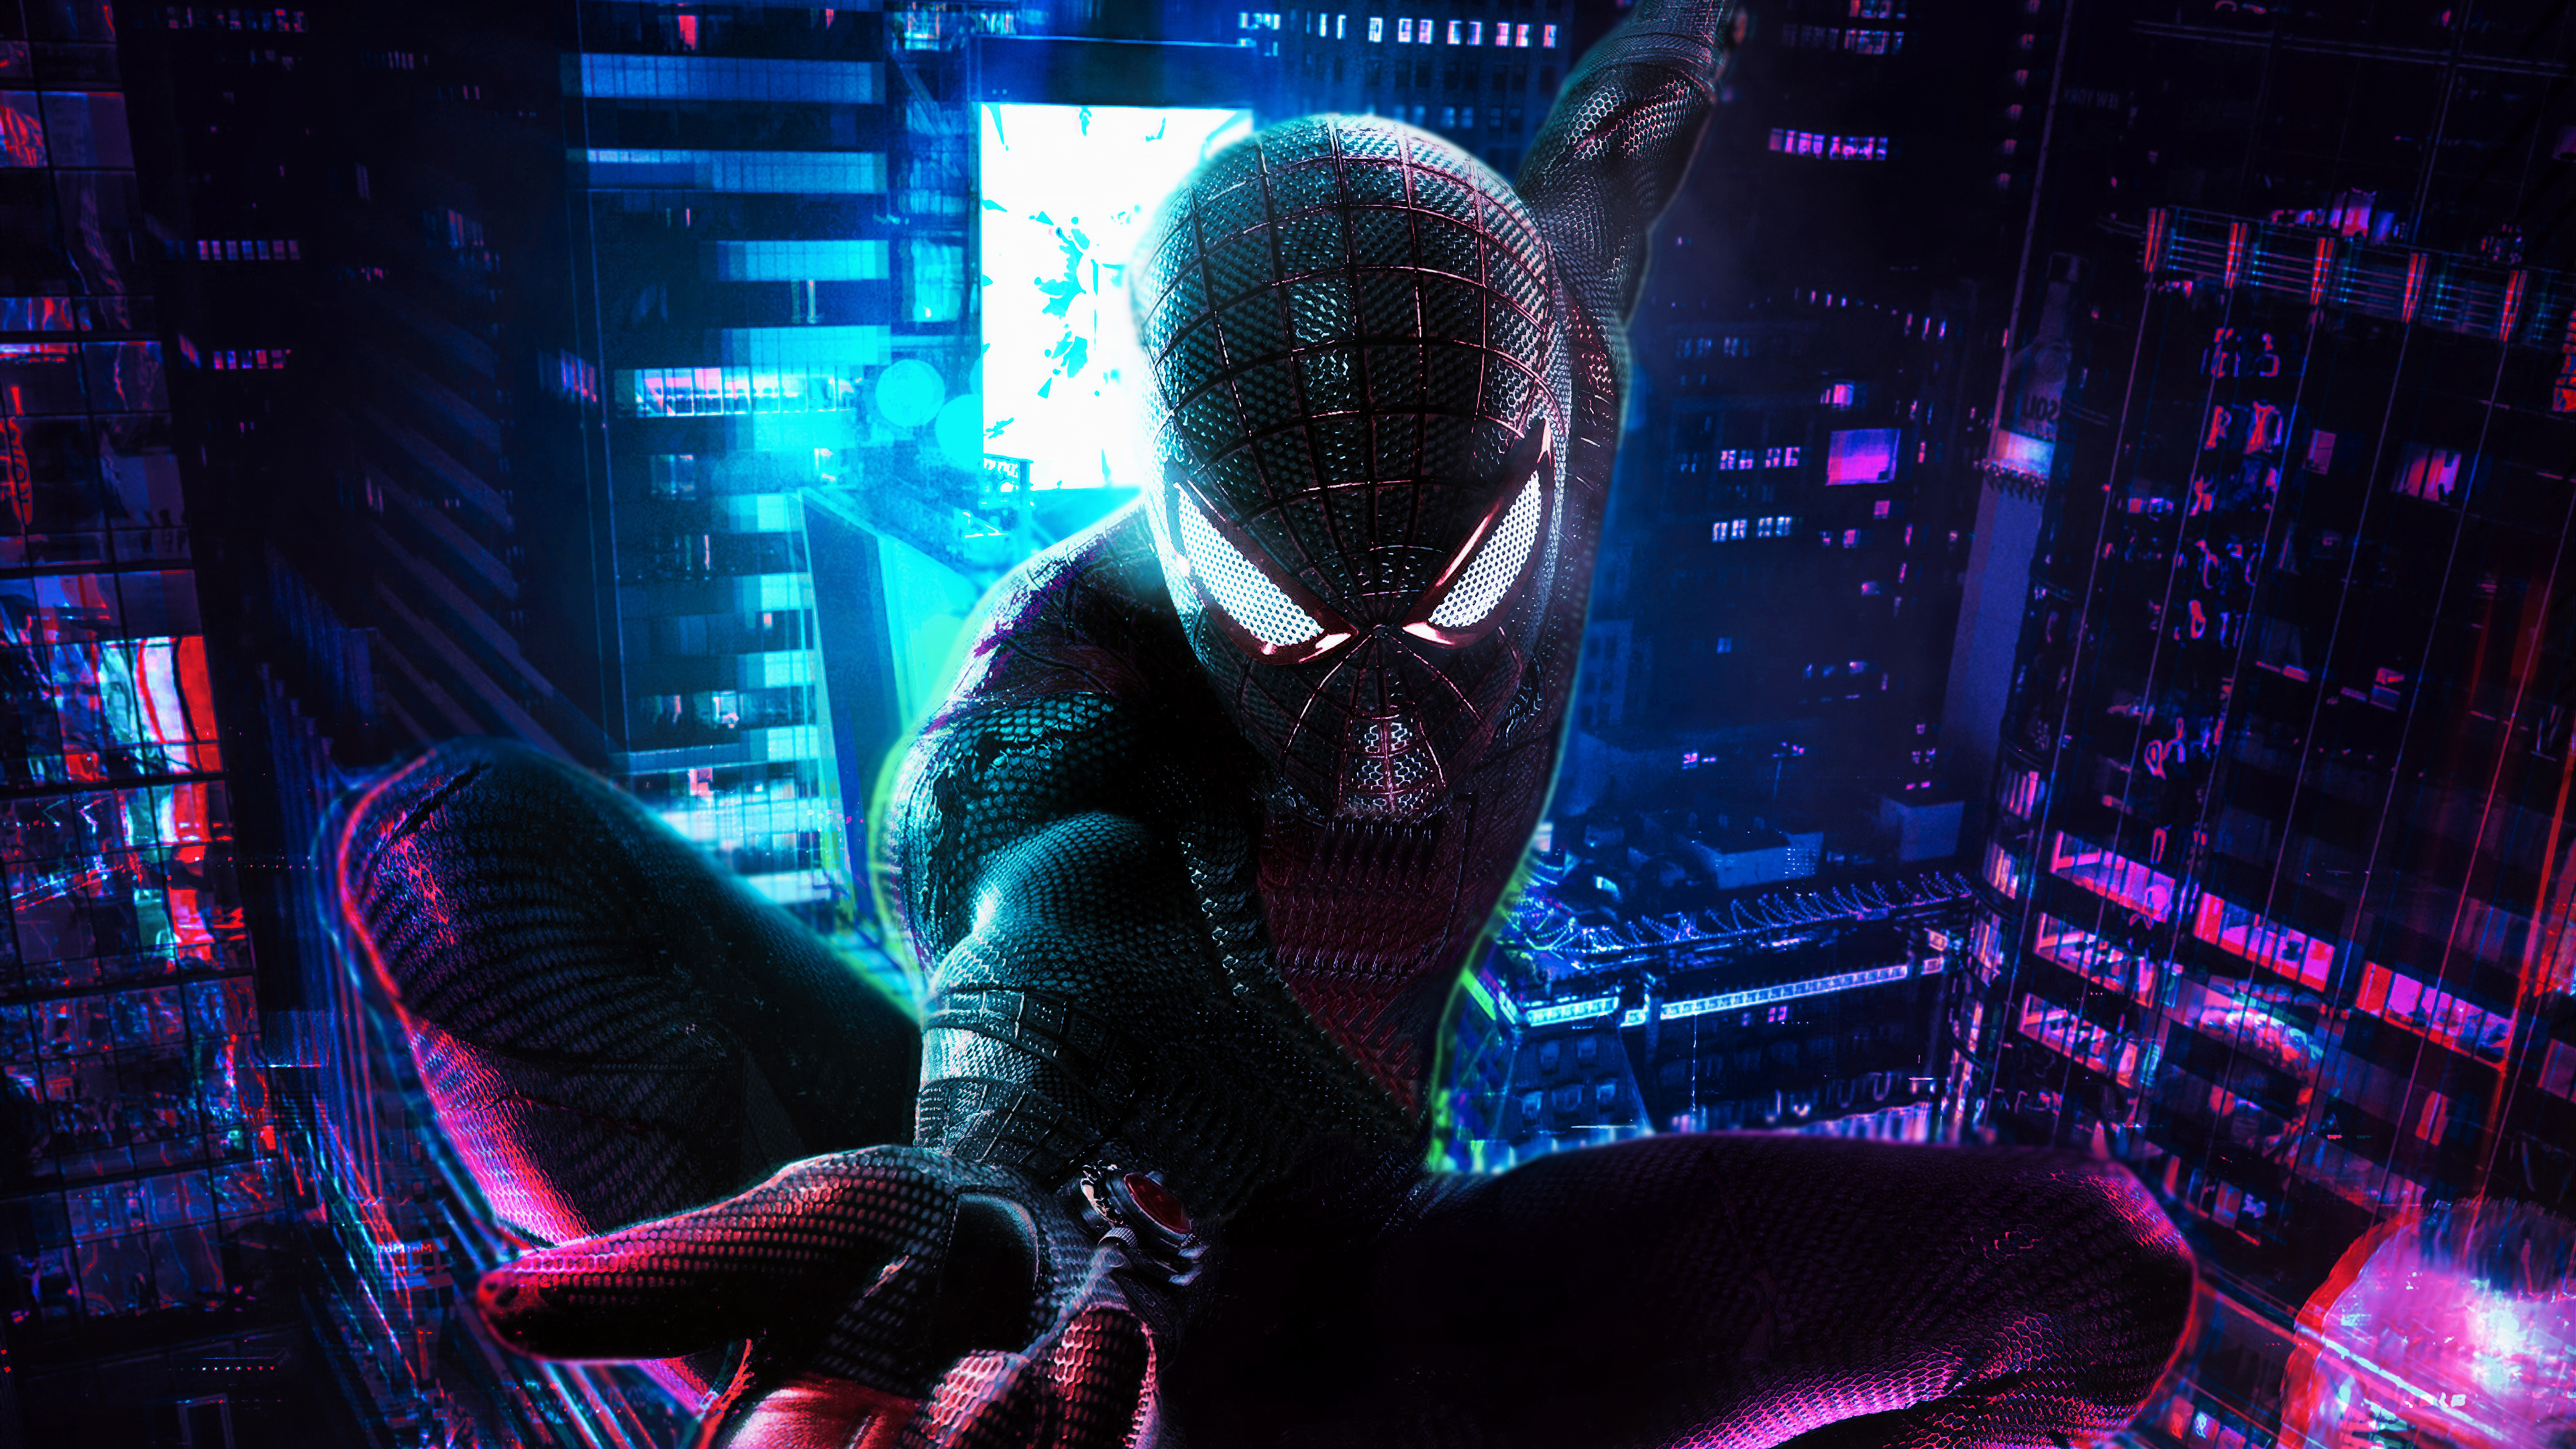 Amazing spiderman cyberpunk hd games 4k wallpapers images backgrounds photos and pictures - Fondos de pantalla para pc hd 4k ...